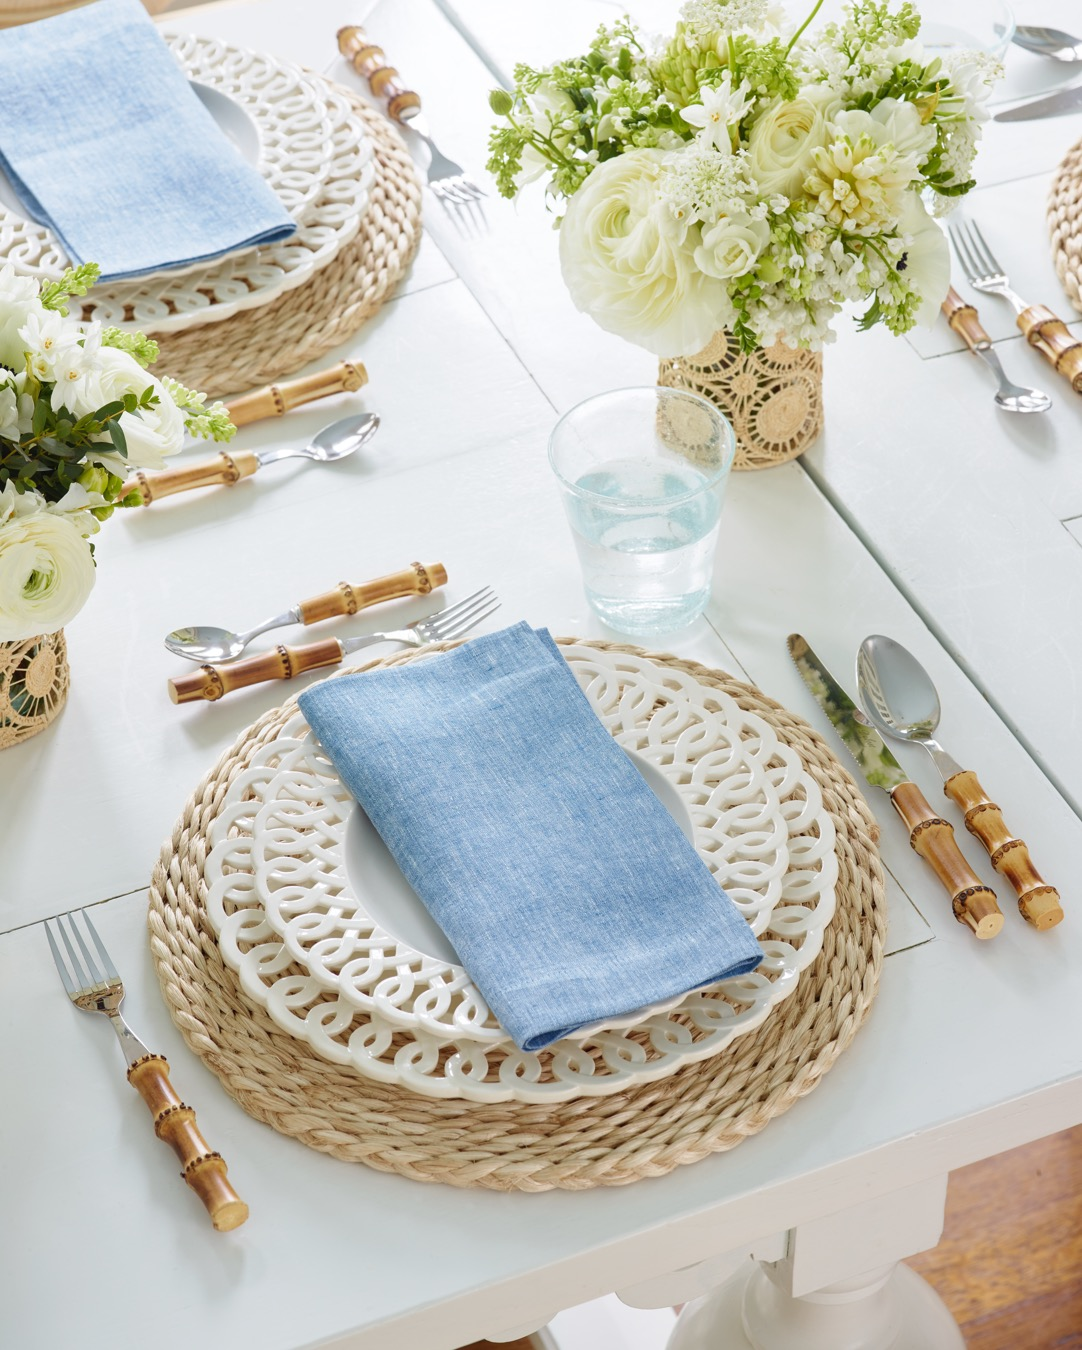 Beautiful plates, bamboo flatware and linens to set a summer table